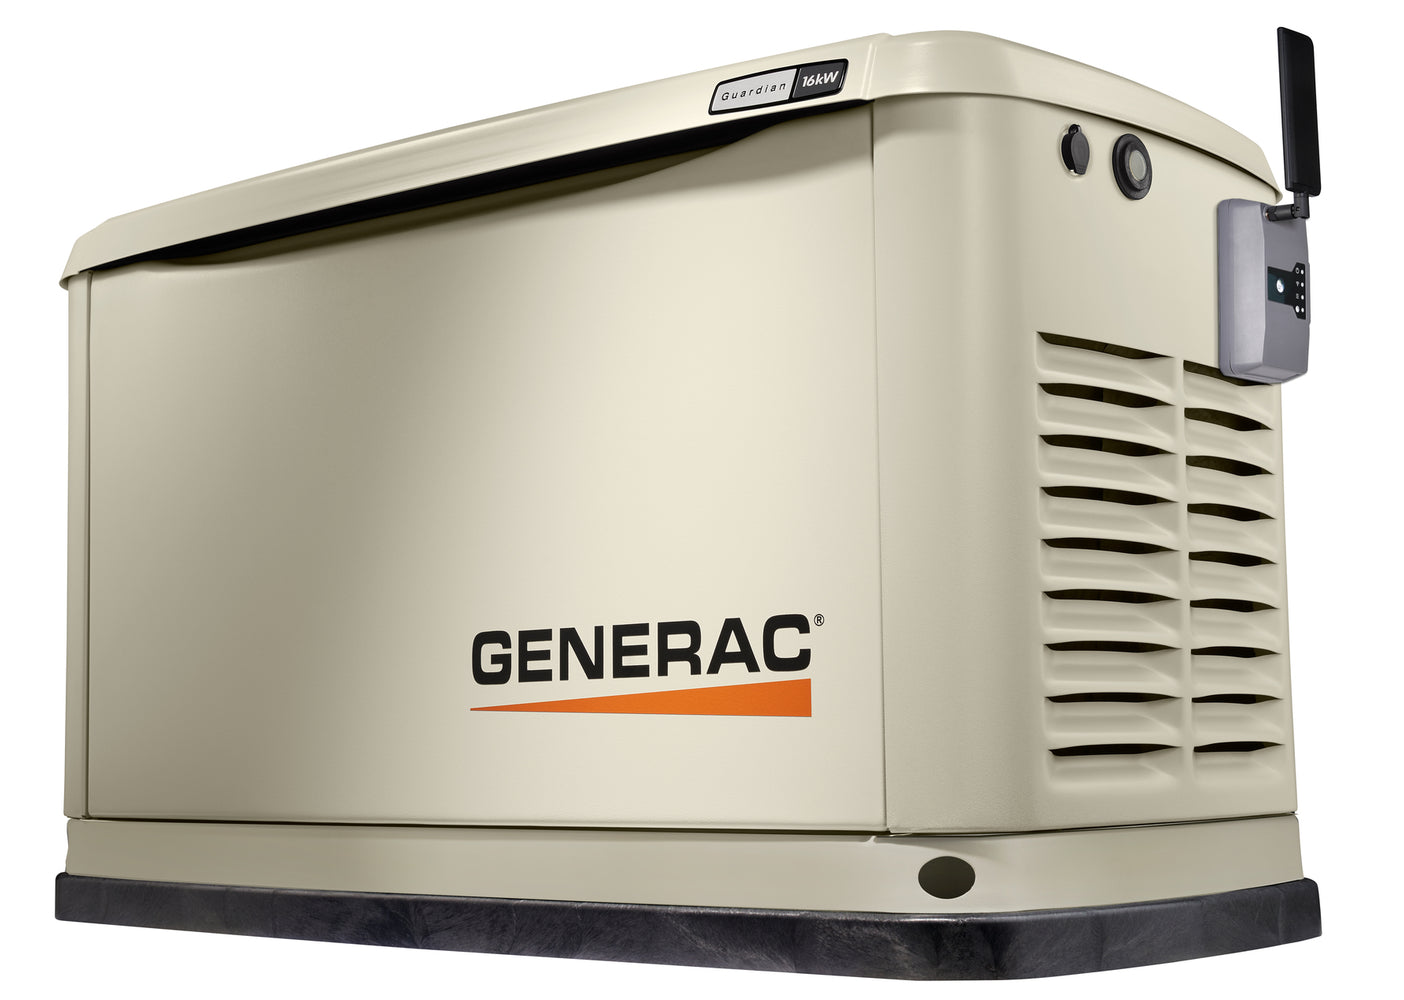 Generac Mobile Link Cellular 4G LTE - Remote Monitor for Standby Generators #7169